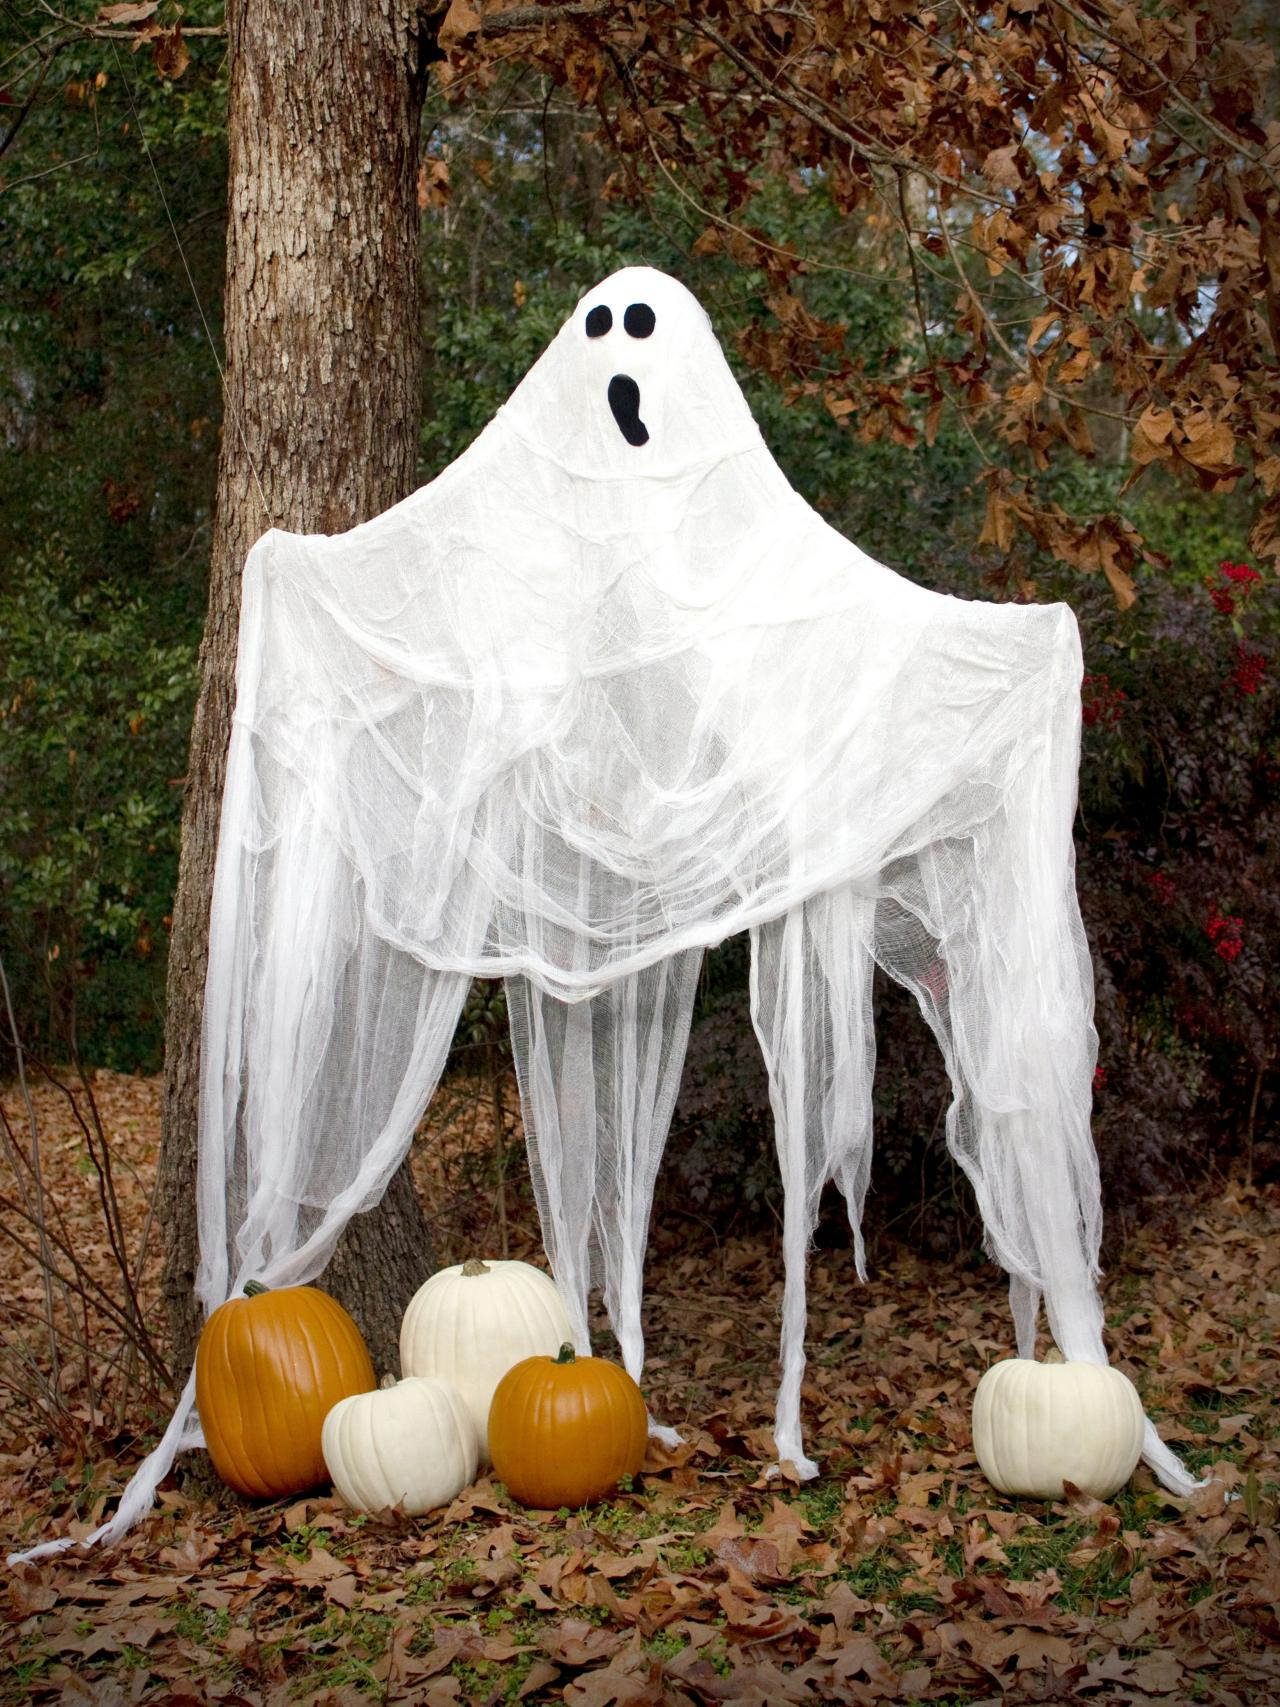 Outdoor Halloween Decorations Ideas To Stand Out - Spooky Decorations